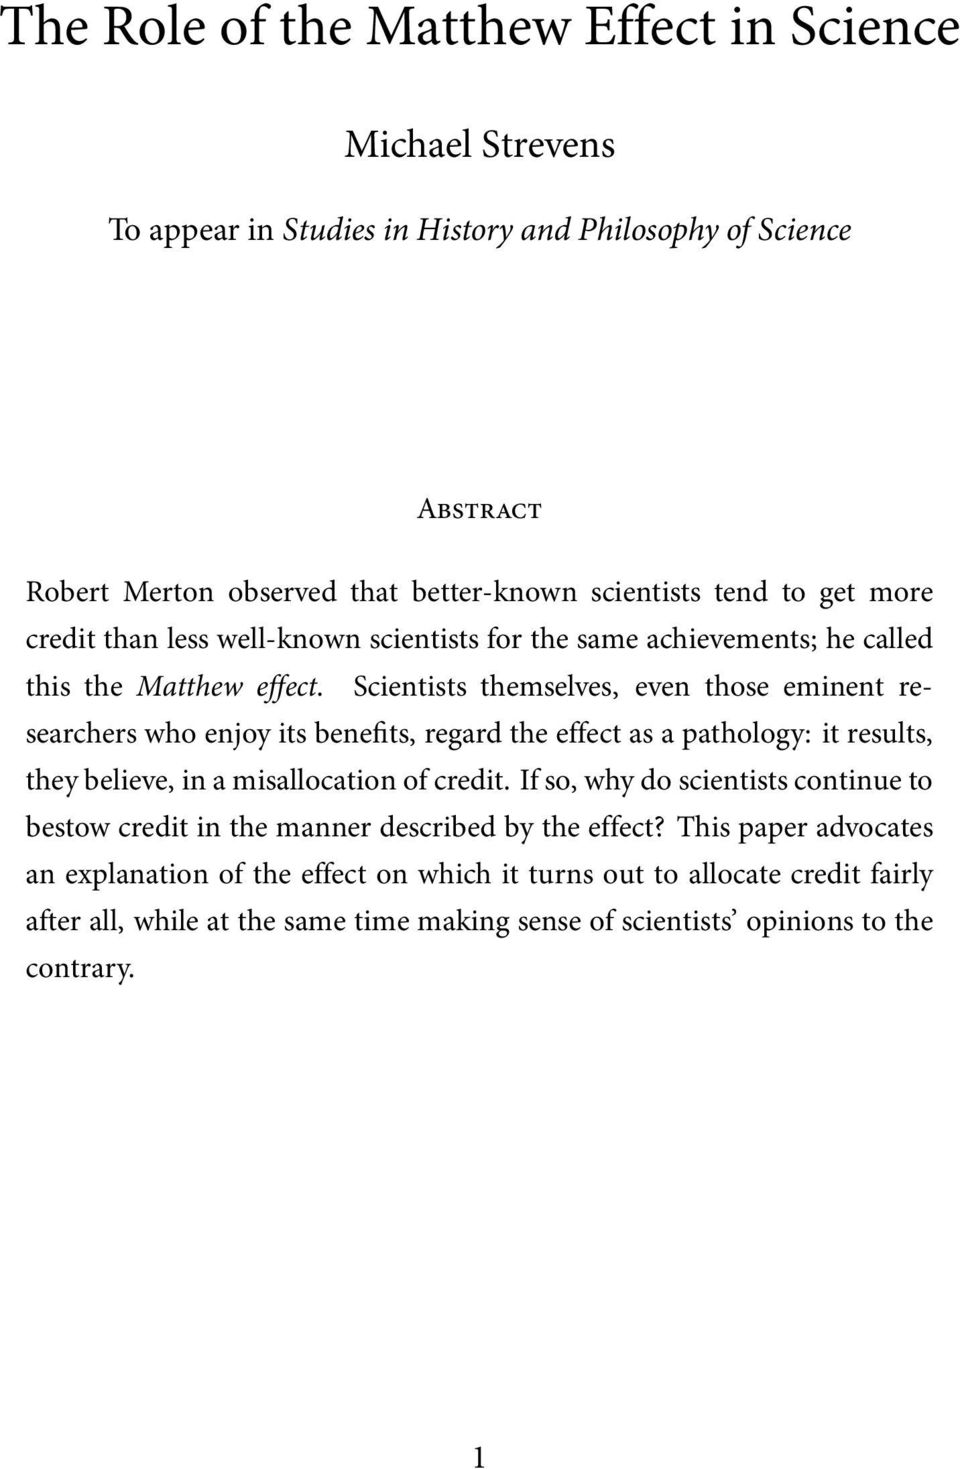 Scientists themselves, even those eminent researchers who enjoy its benefits, regard the effect as a pathology: it results, they believe, in a misallocation of credit.